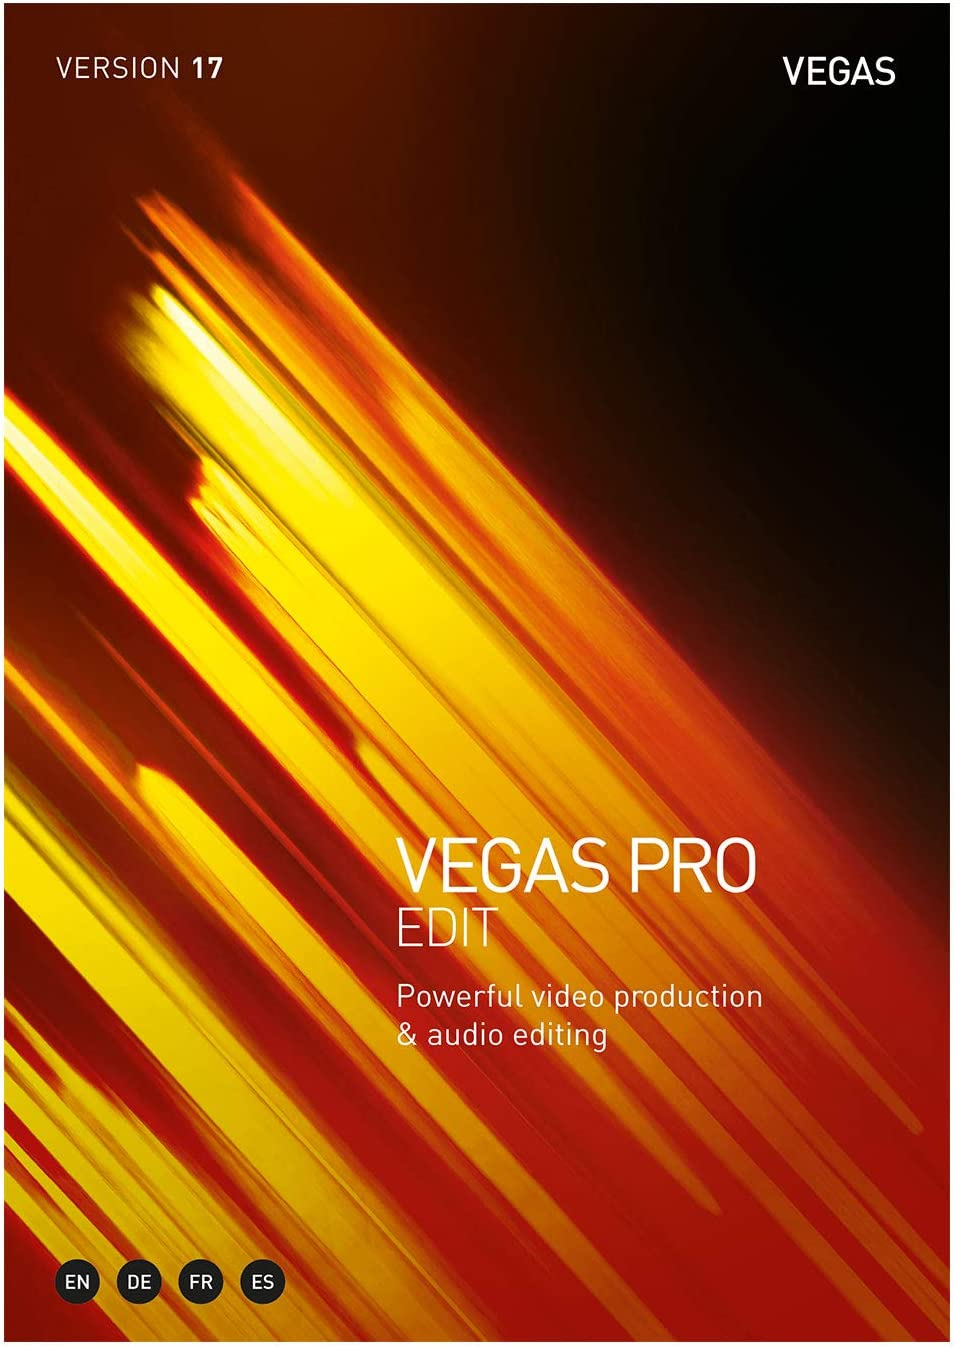 B07WF9TJRS VEGAS Pro 17 Edit [PC Download] 7152BrsAFkYL.SL1500_